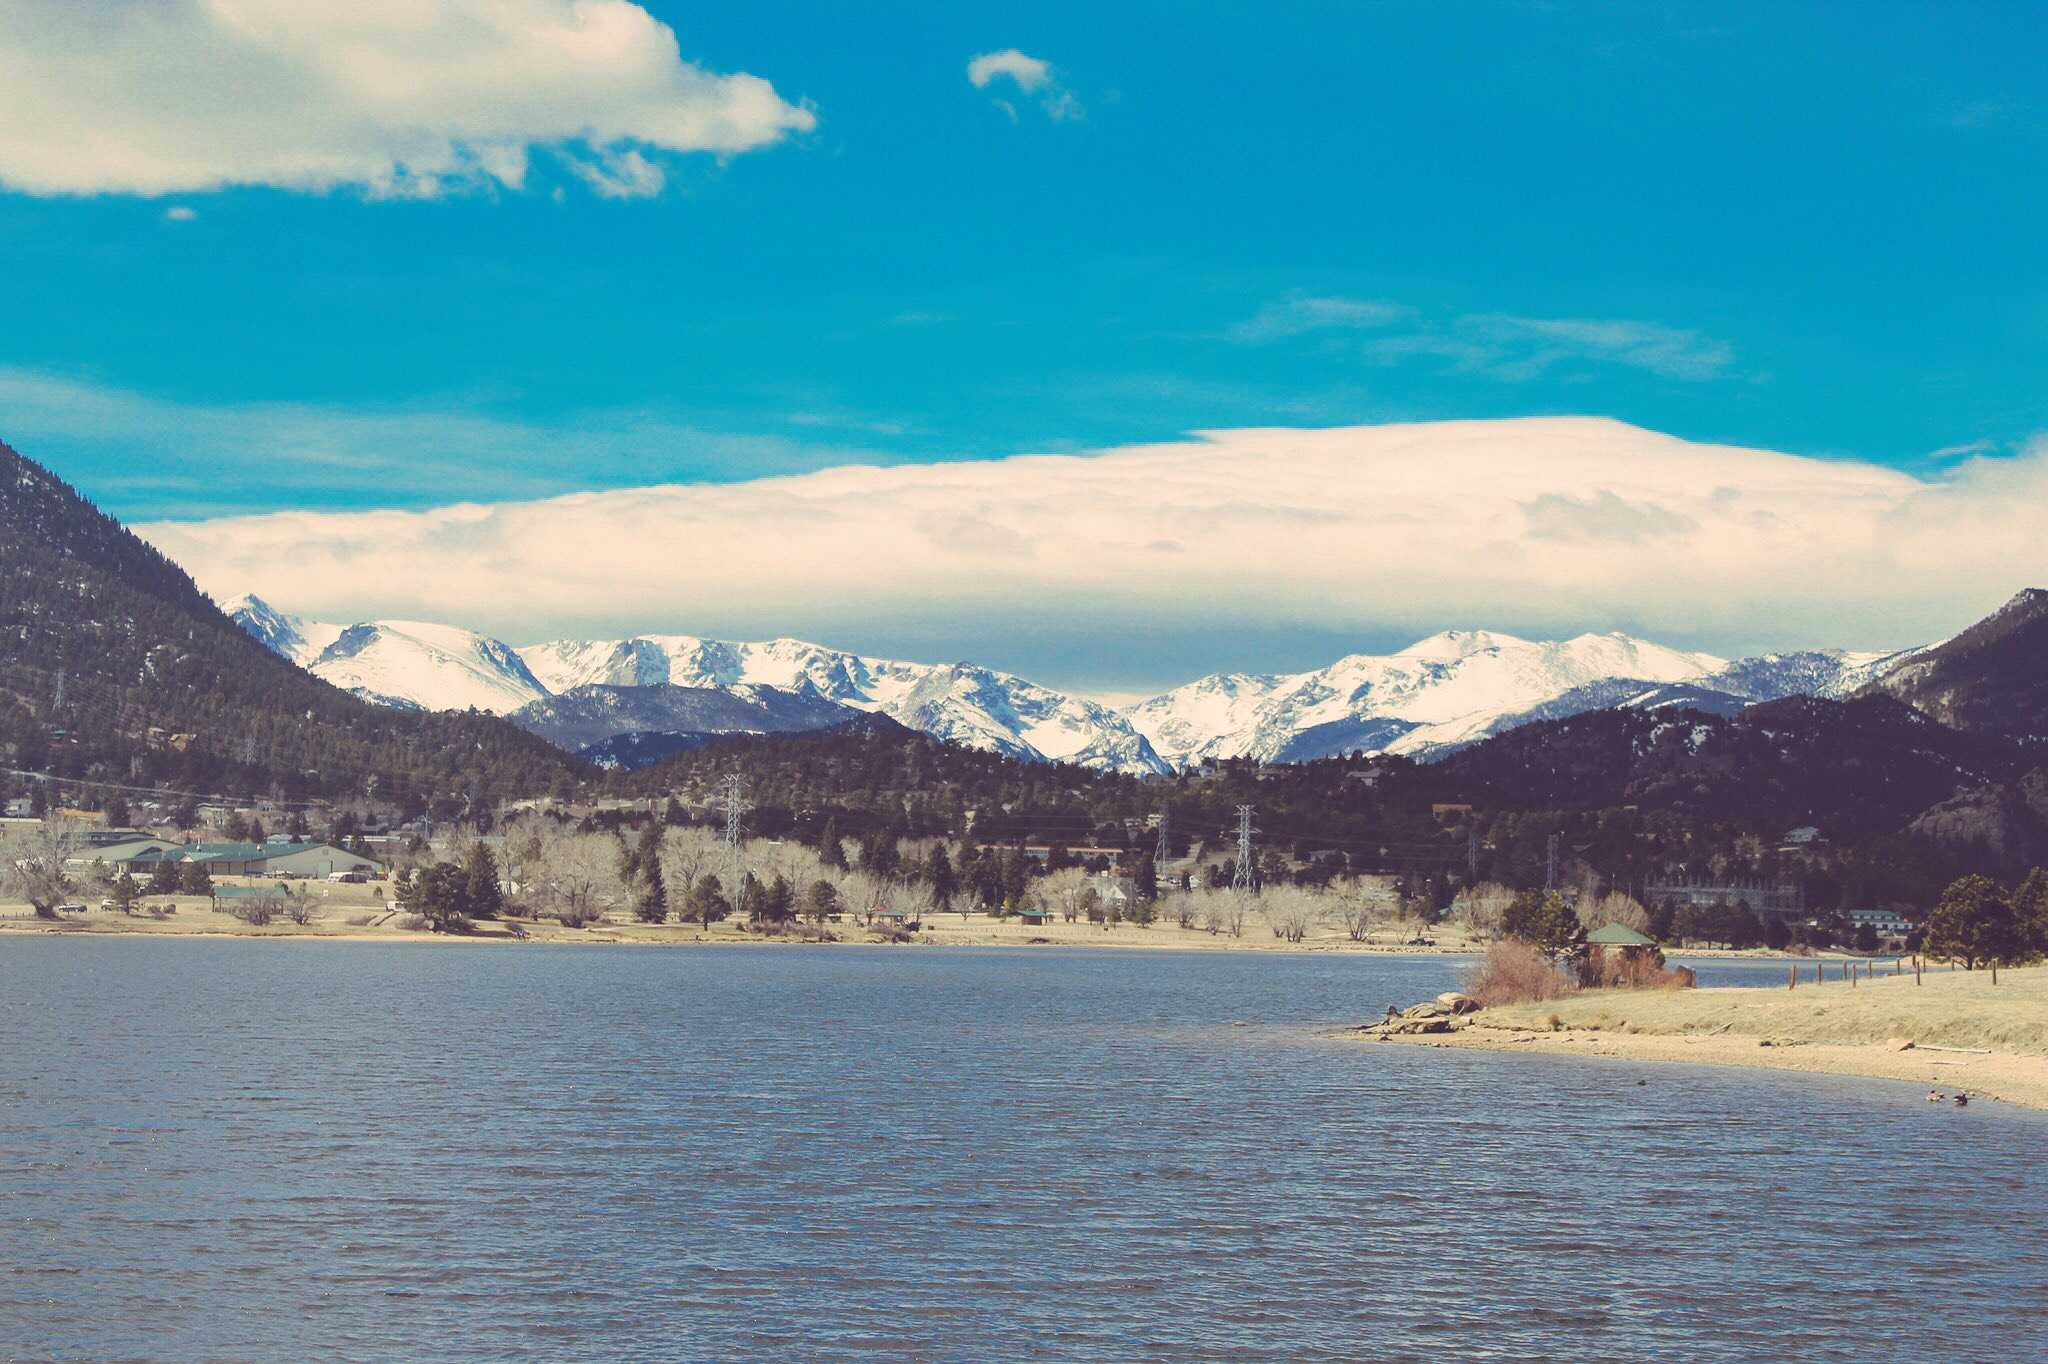 A Spring Break vacation to Estes Park, Colorado includes these stunning views. The trip was spent hiking mountains, including the Meker mountain, showed in the following picture.